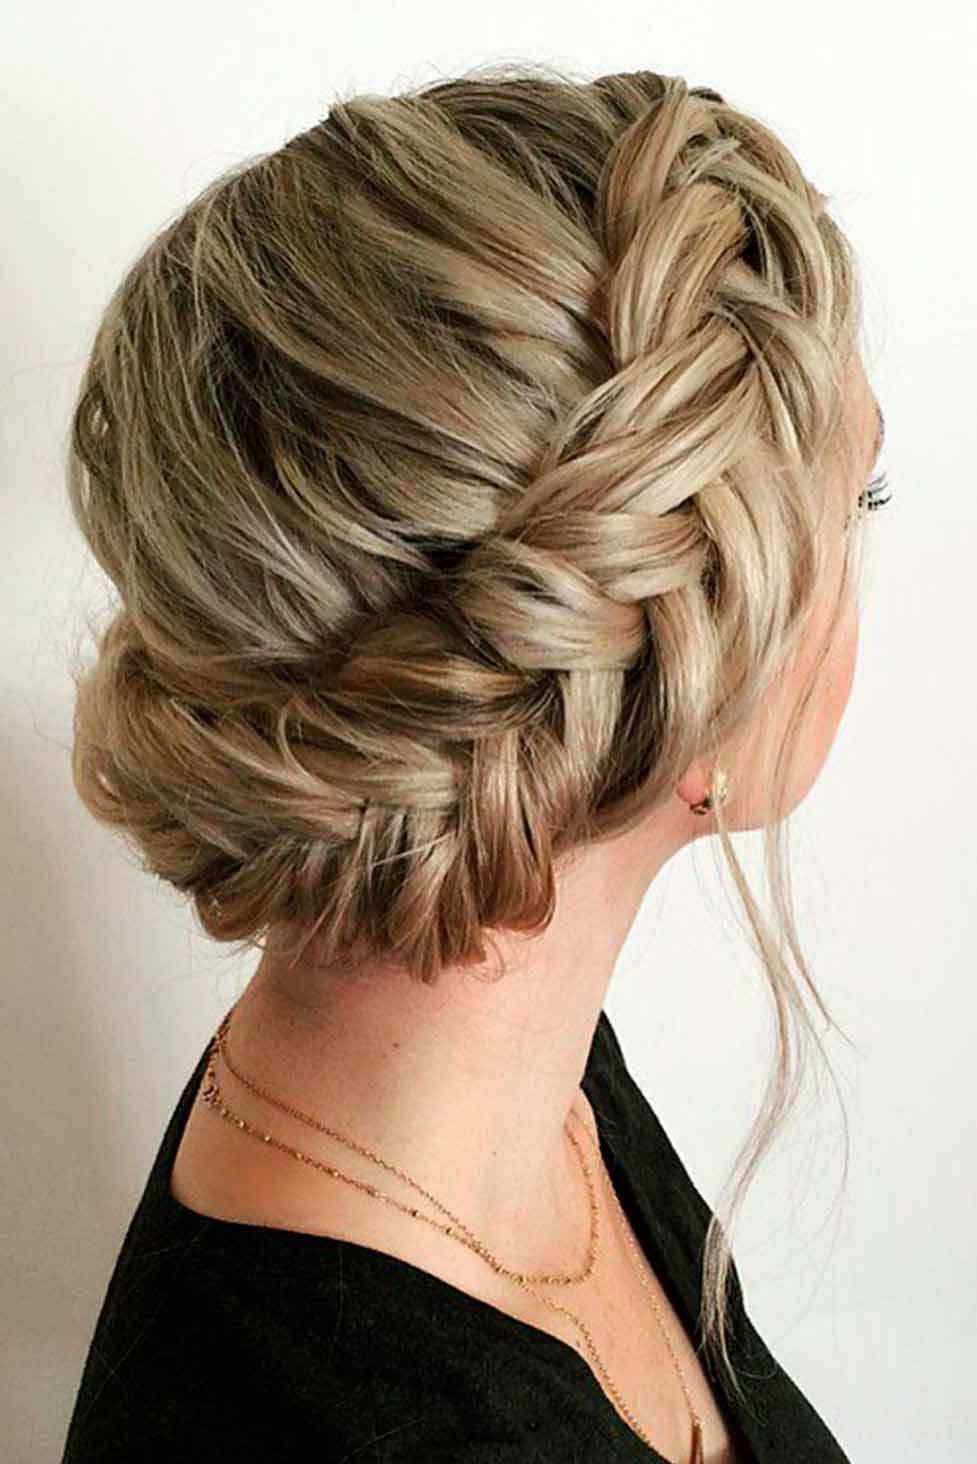 amazing braid hairstyles for party and holidays pinterest